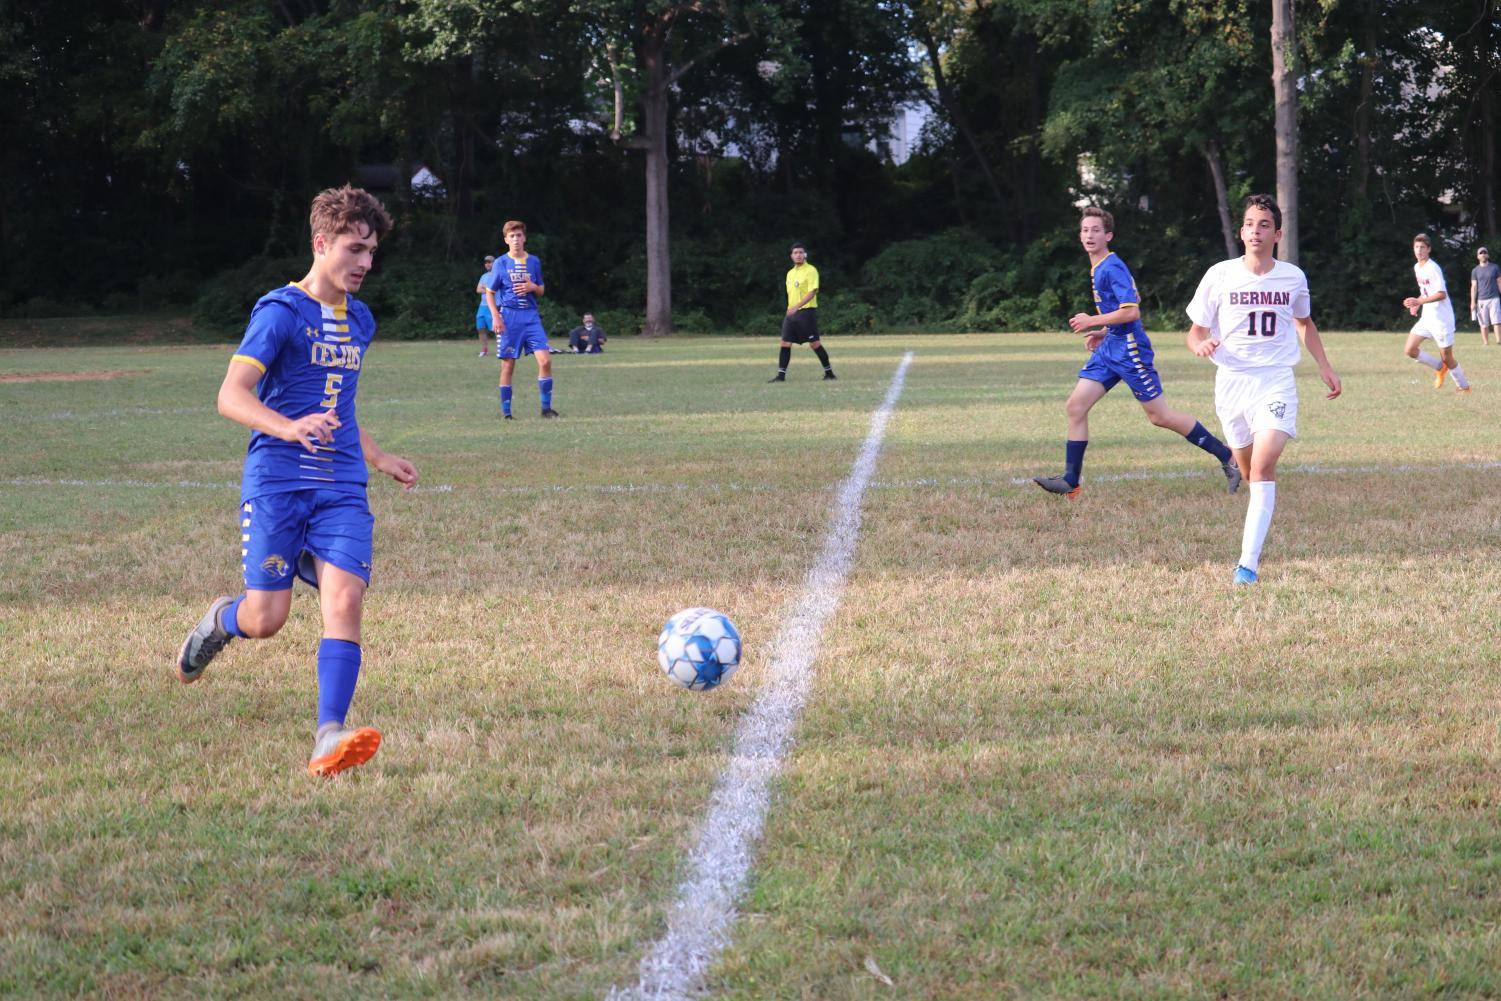 Senior co-captain Yoni Preuss runs after the ball in the boys varsity soccer game Tuesday afternoon.